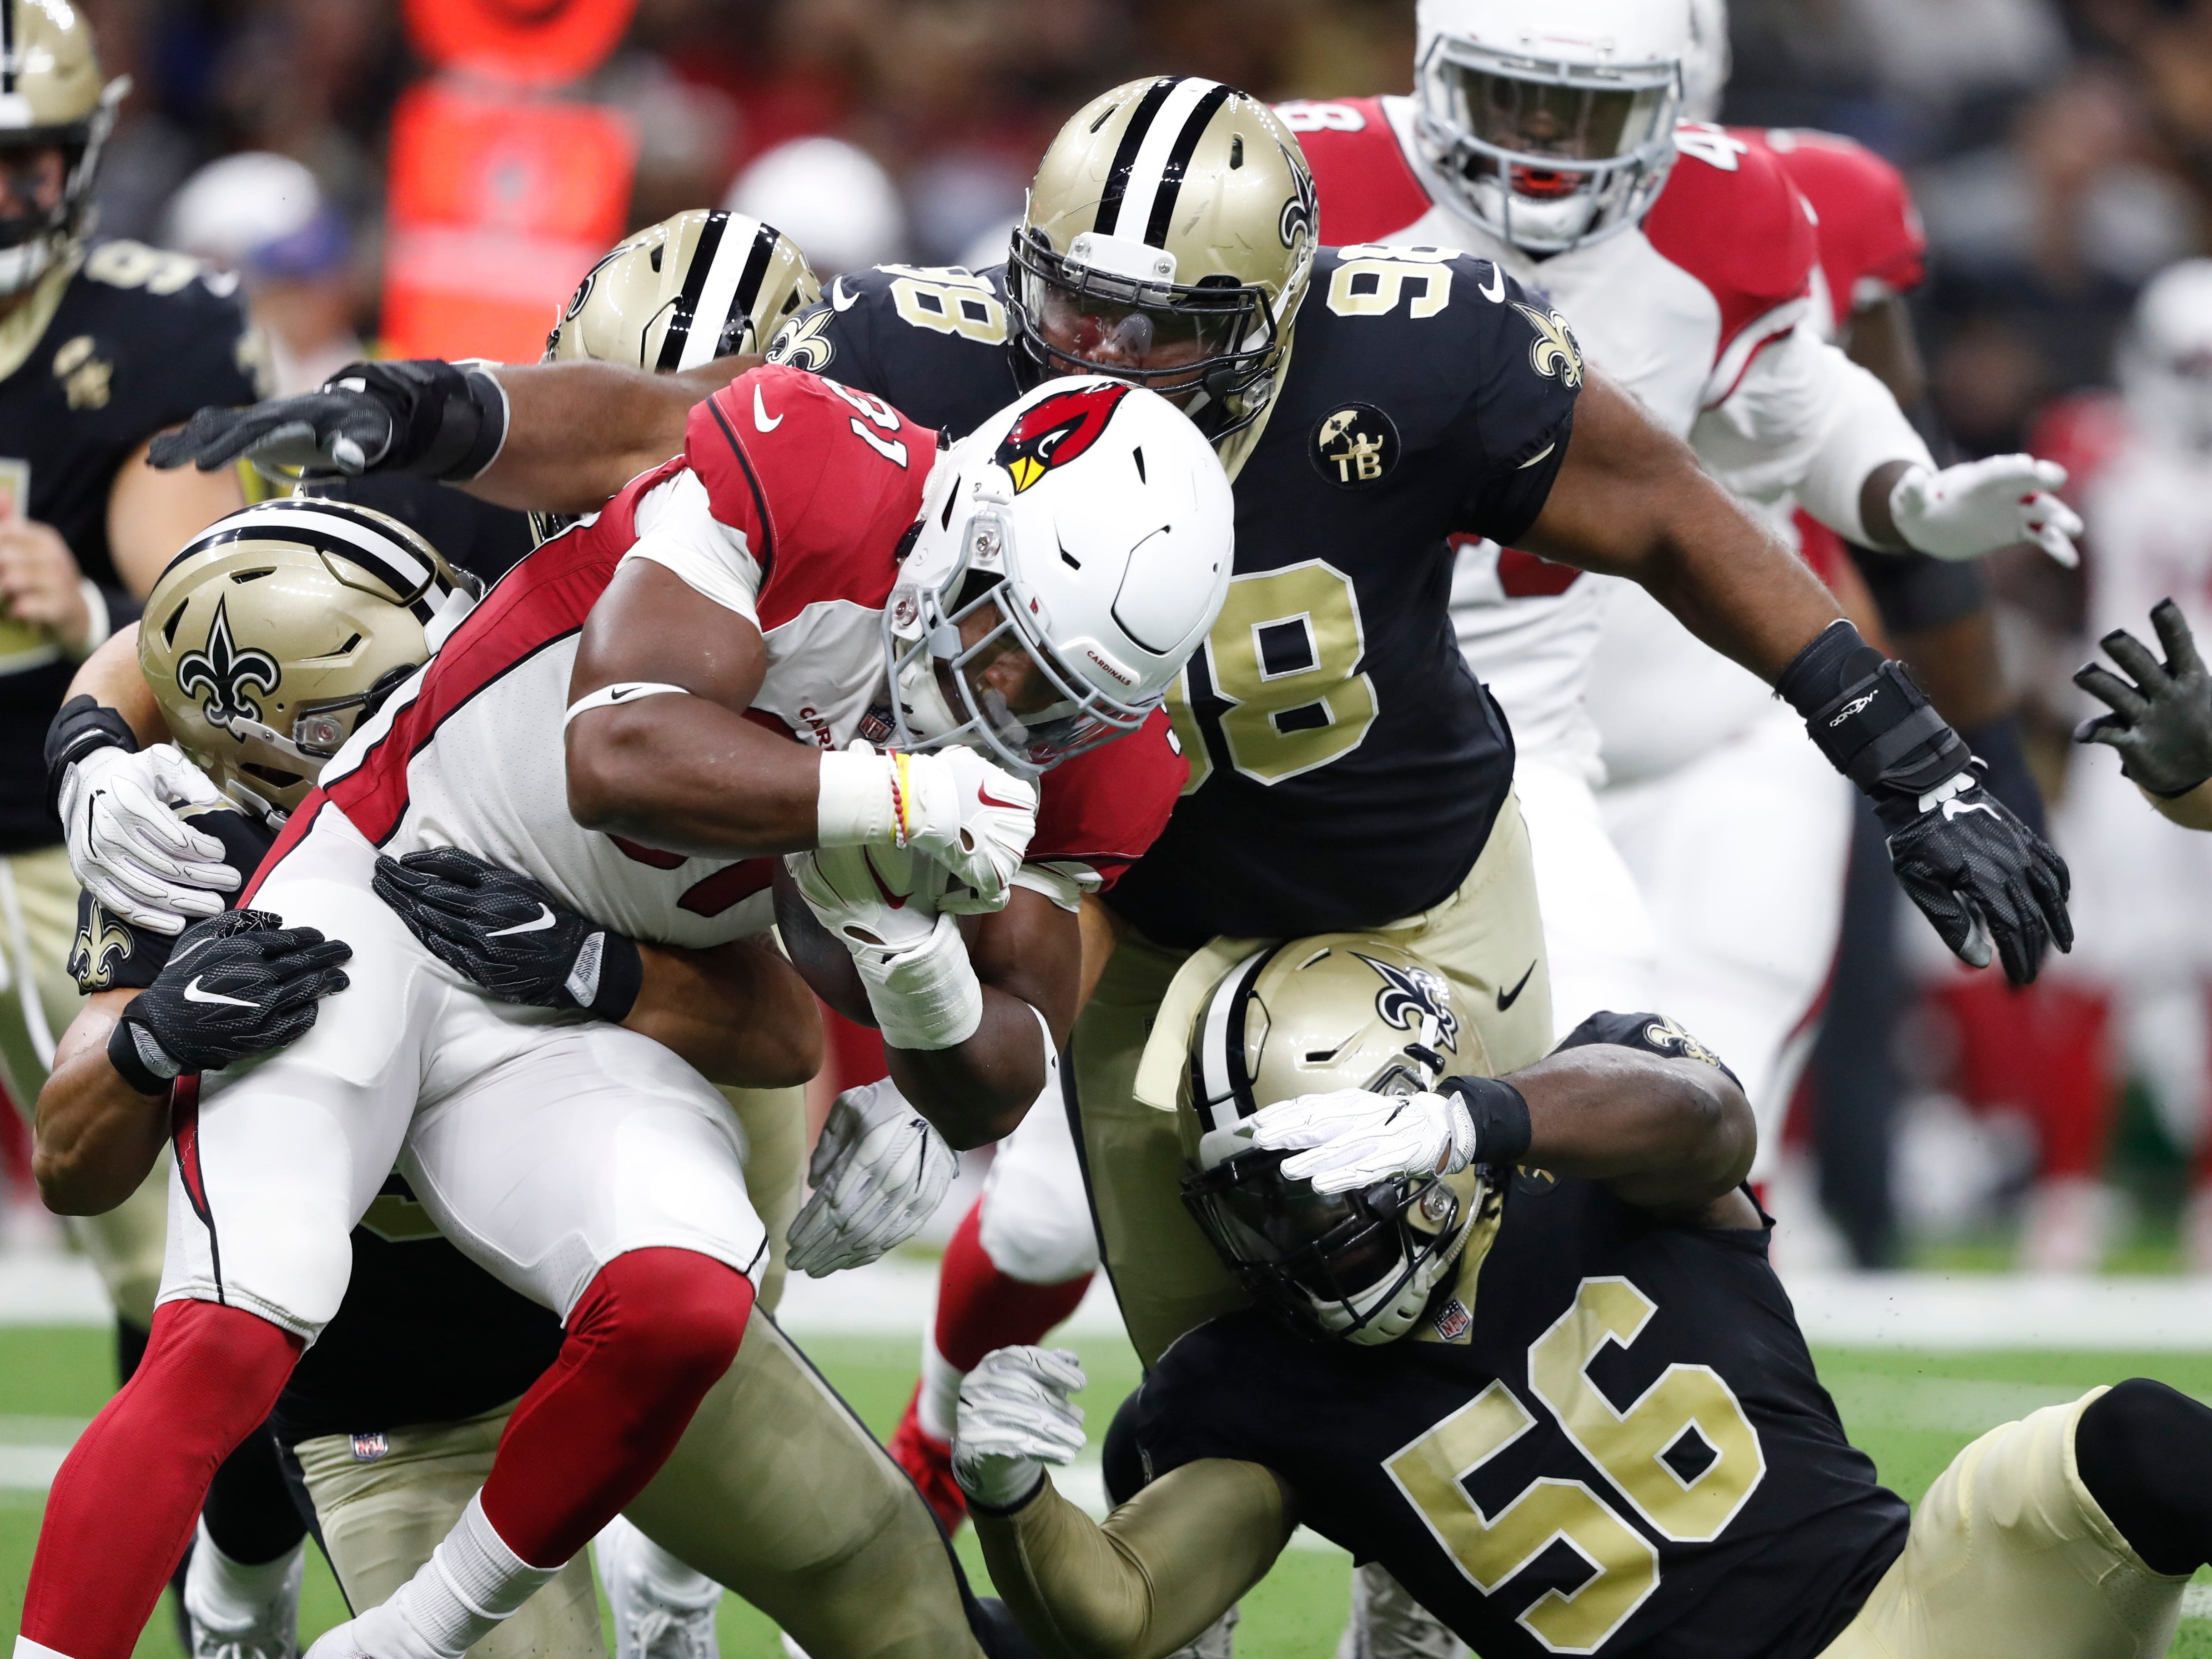 Arizona Cardinals running back David Johnson (31) carries in the first half of an NFL preseason football game against the New Orleans Saints in New Orleans, Friday, Aug. 17, 2018.